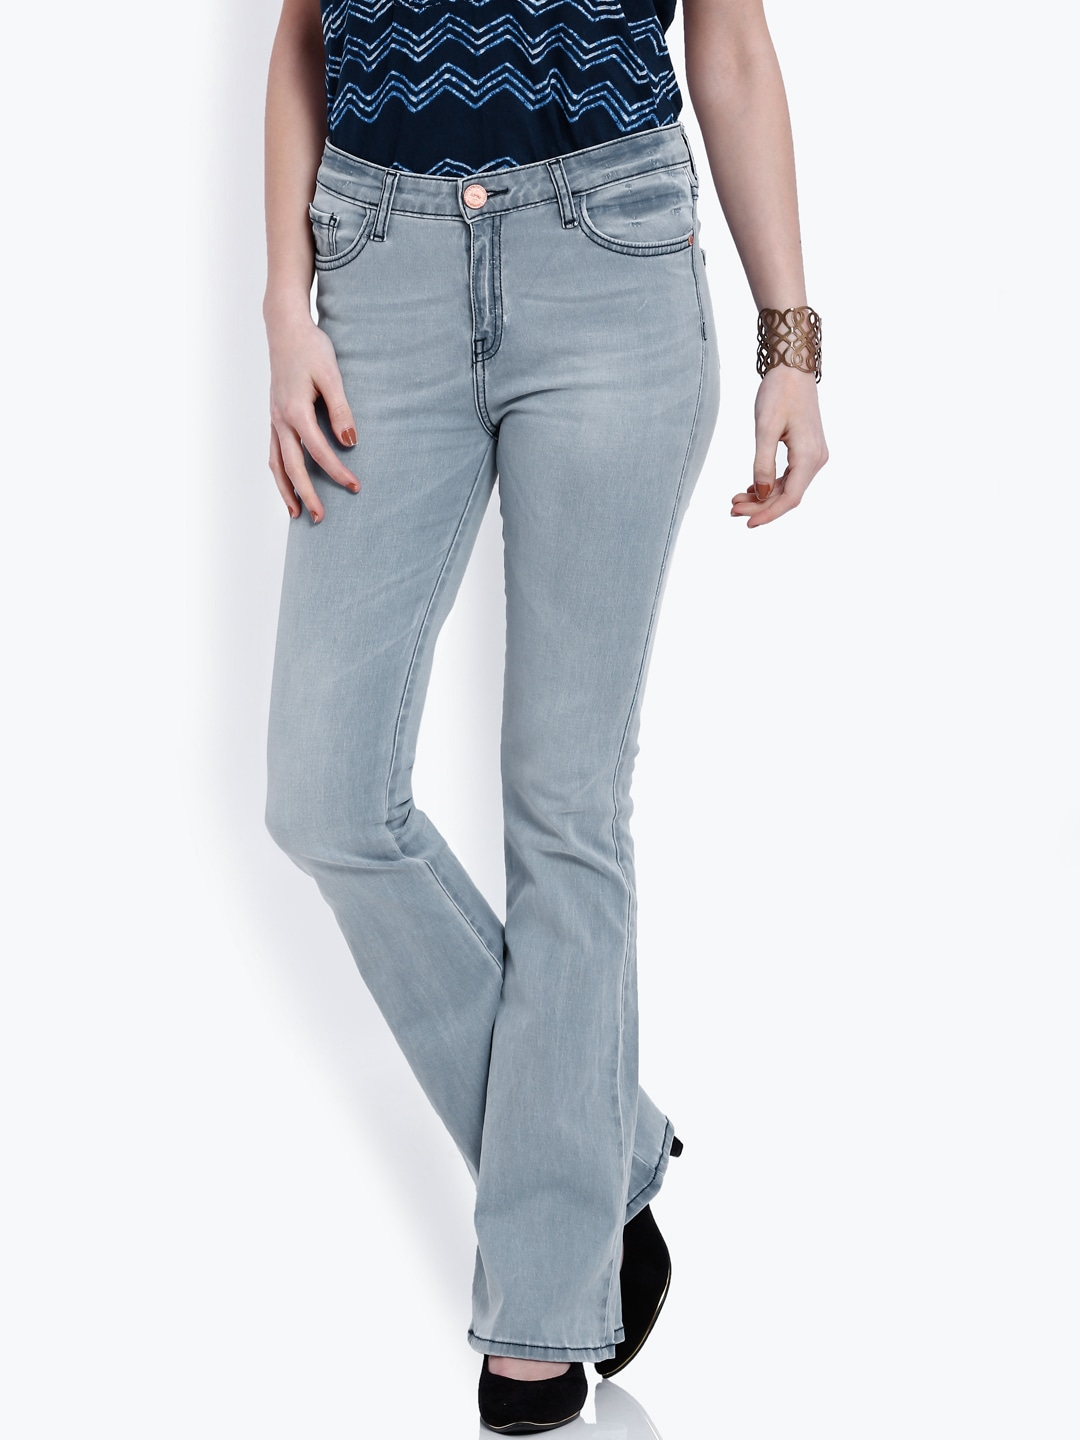 High Waist Jeans - Buy High Waist Jeans online in India